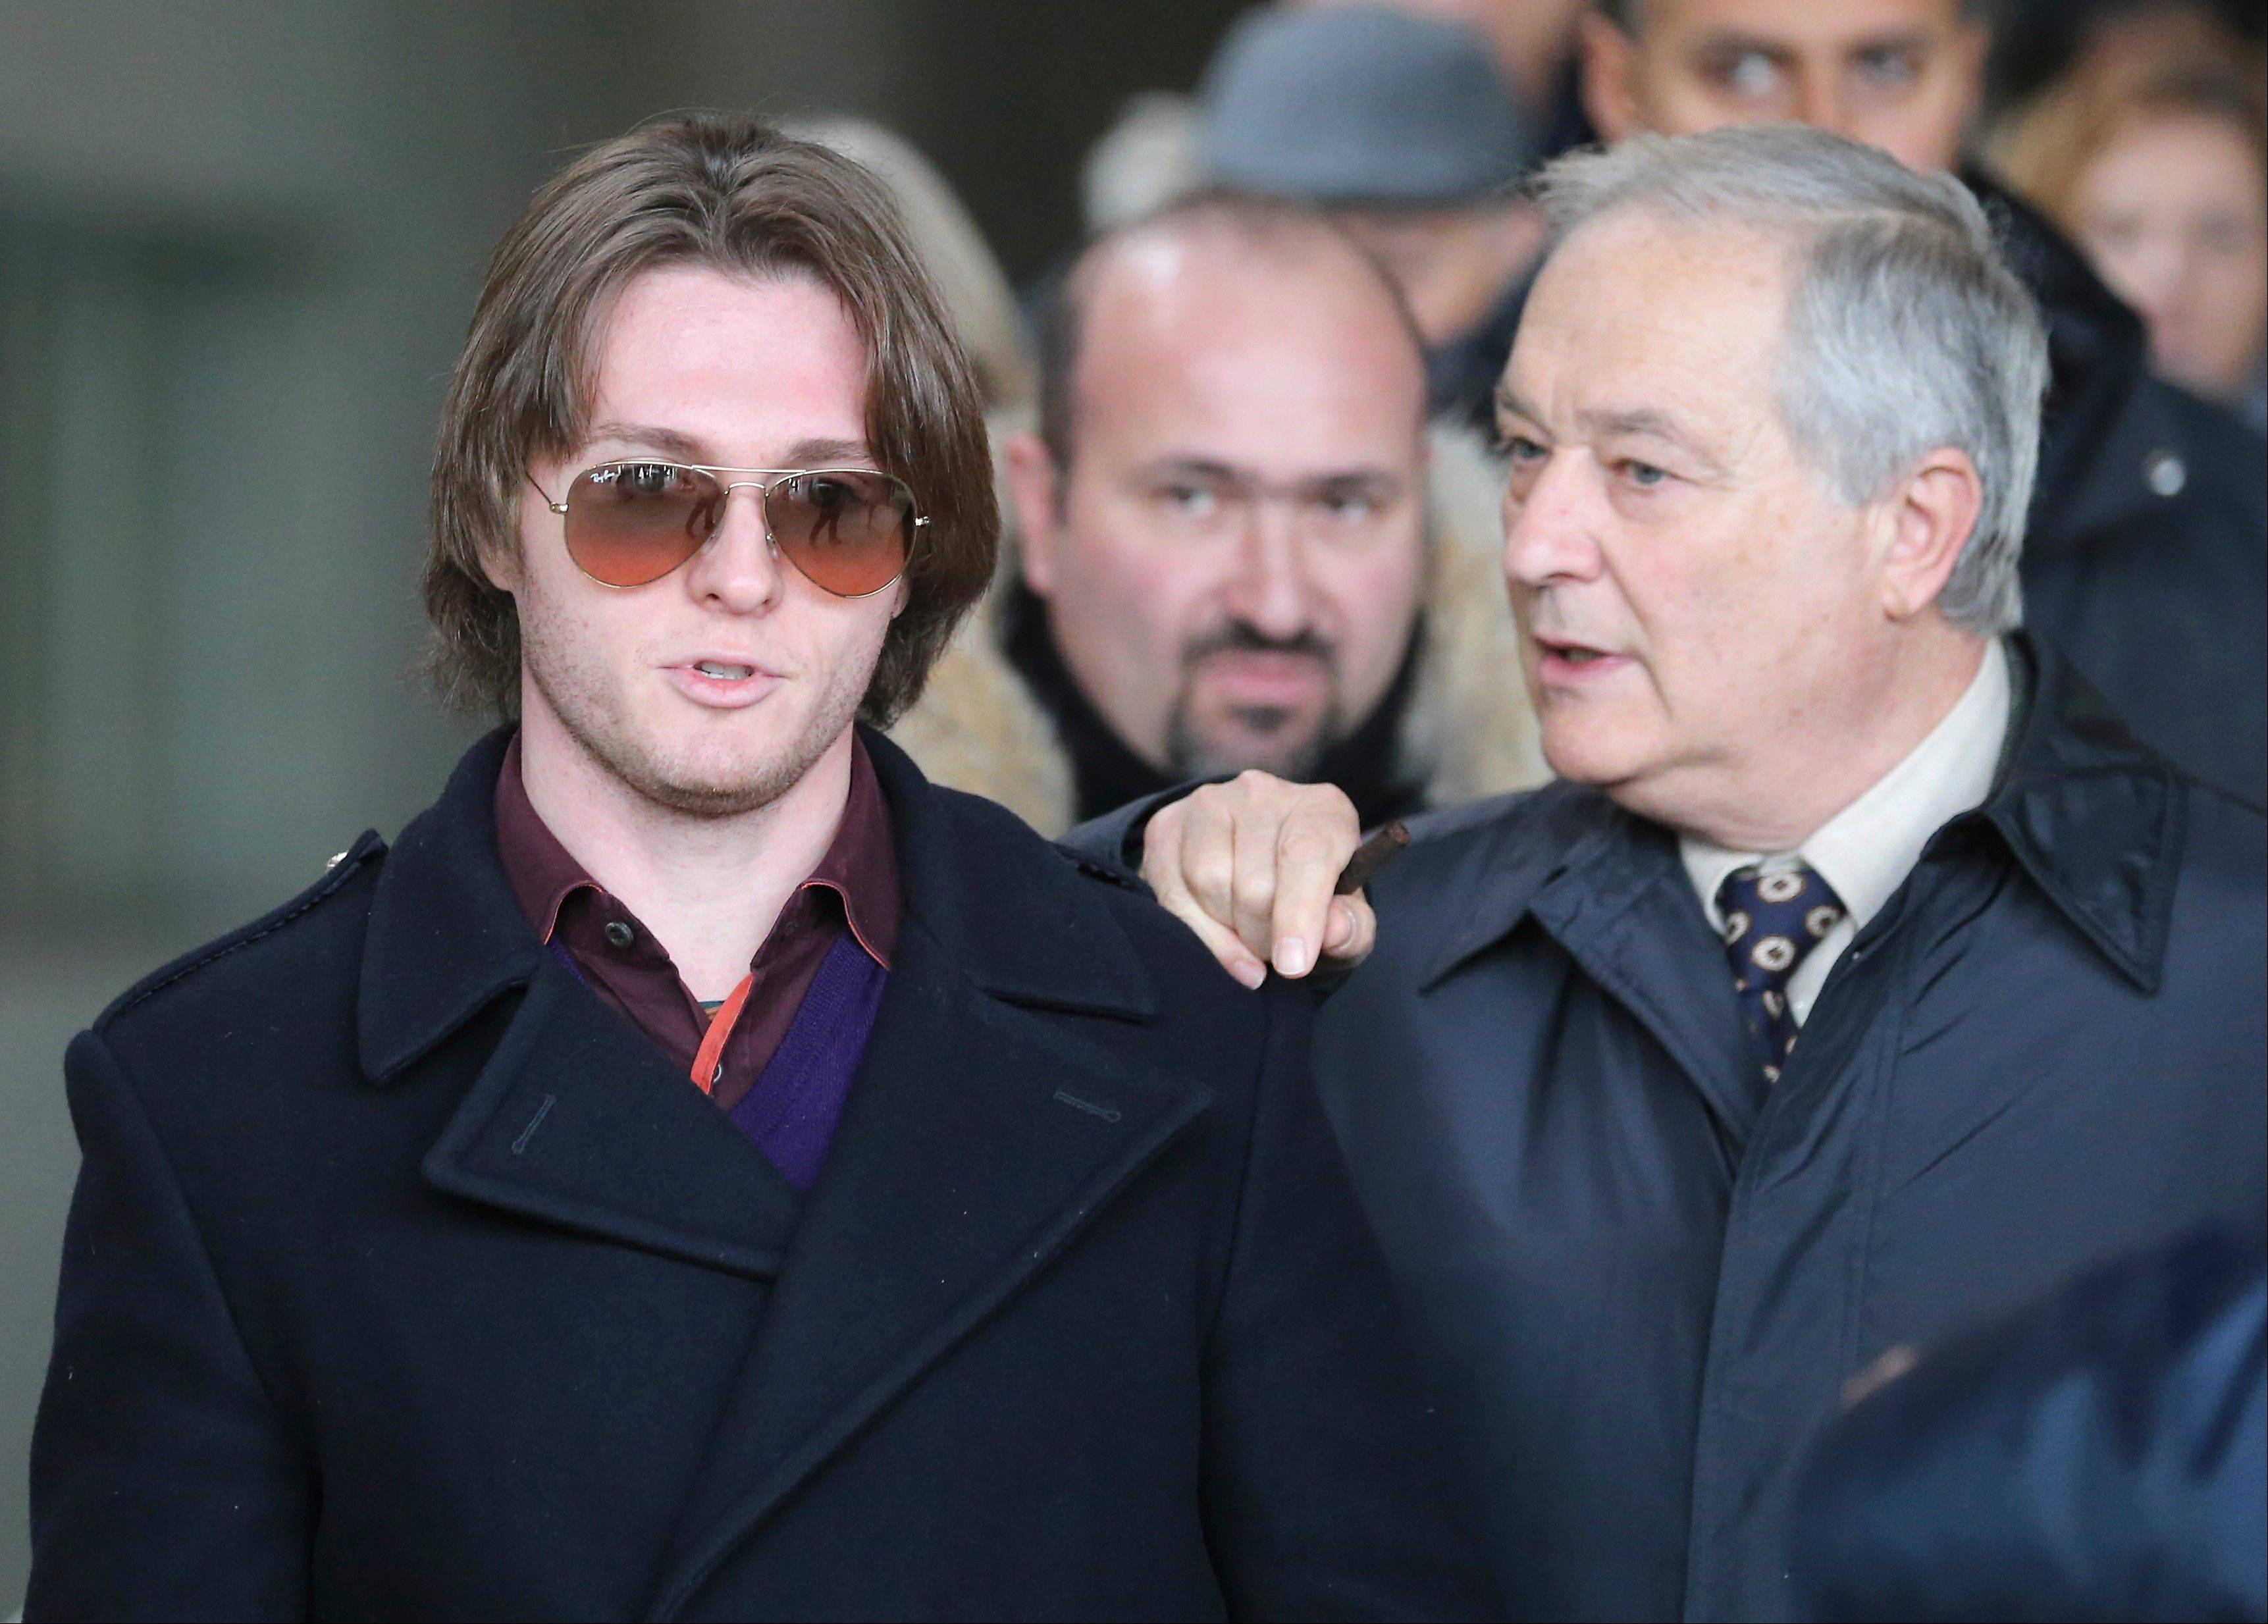 Raffaele Sollecito, left, and his father Francesco leave after attending the final hearing before the third court verdict for the murder of British student Meredith Kercher, in Florence, Italy, Thursday, Jan. 30, 2014. The first two trials produced flip-flop verdicts of guilty then innocent for Kercher's former roommate, American student Amanda Knox, who is not attending the hearing, and her former Italian boyfriend, Raffaele Sollecito.